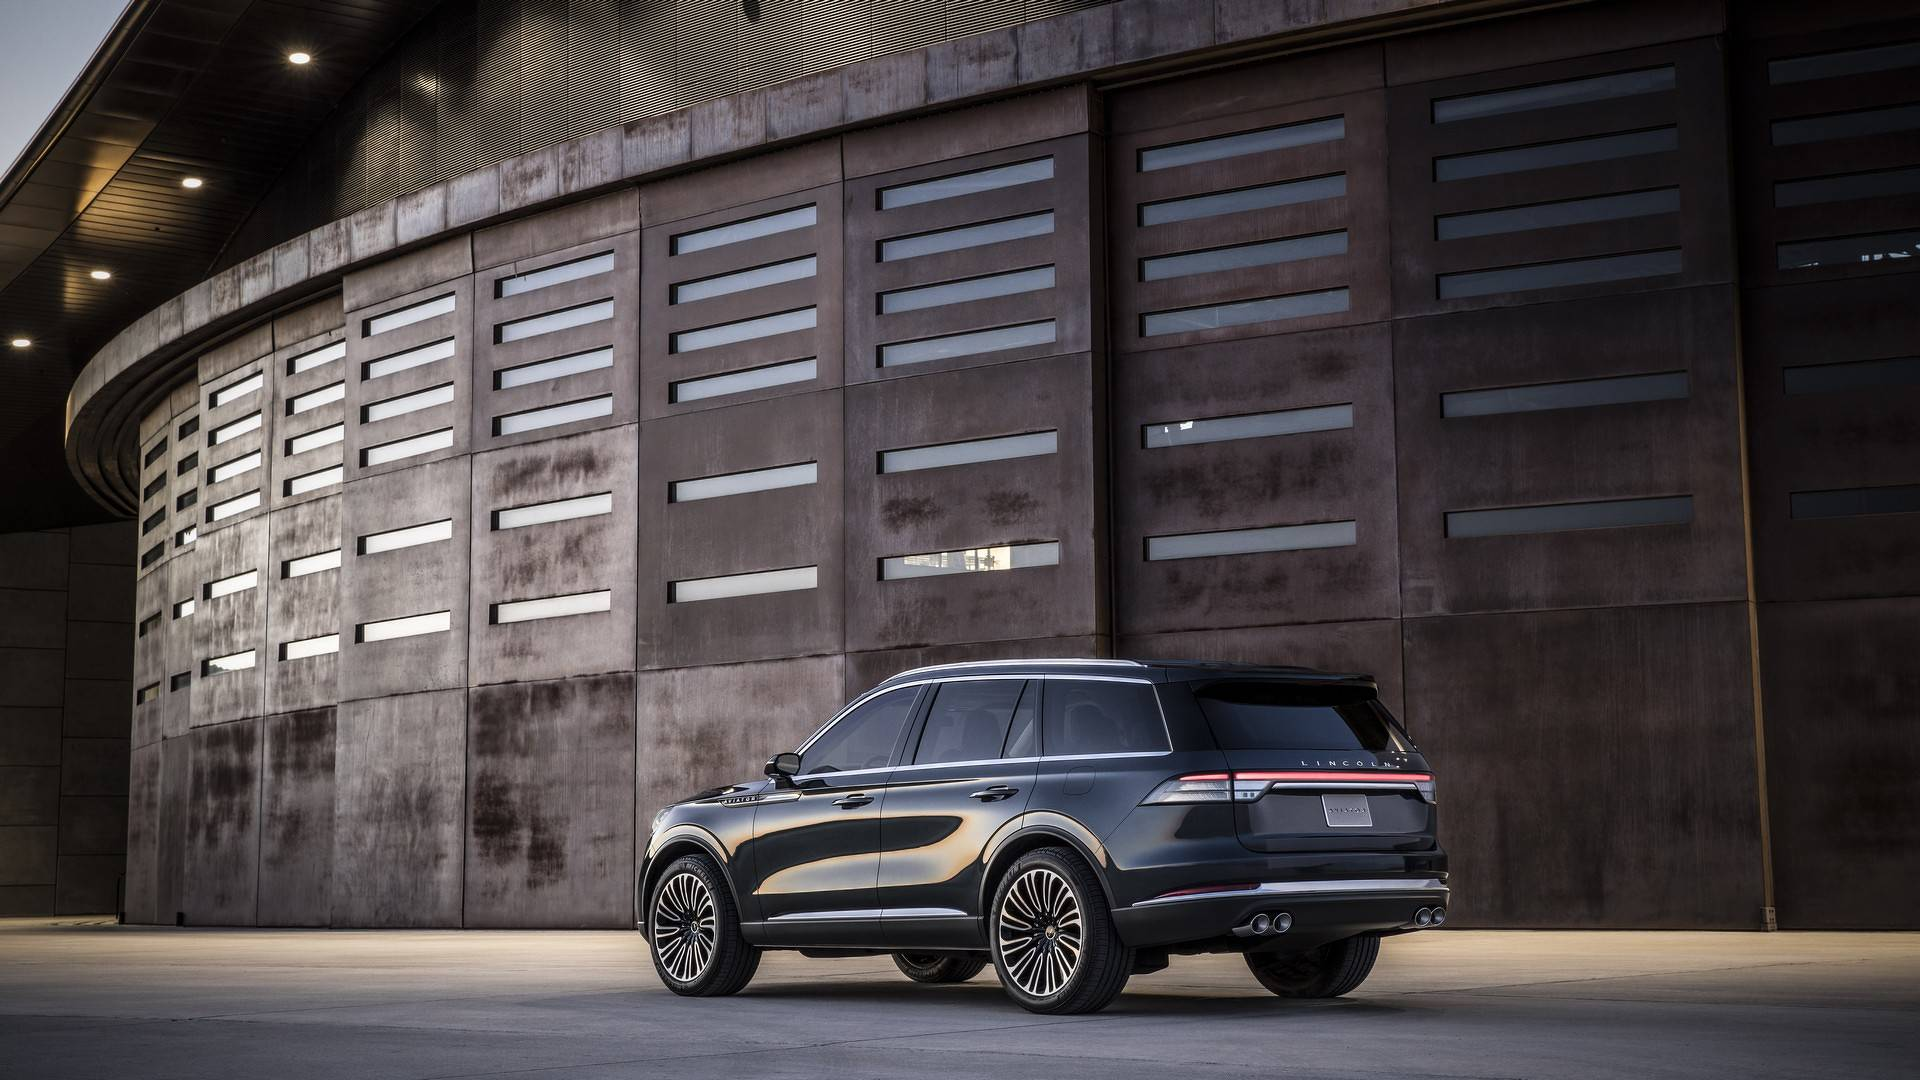 2020 Ford Police Interceptor Utility Previews New Explorer ...